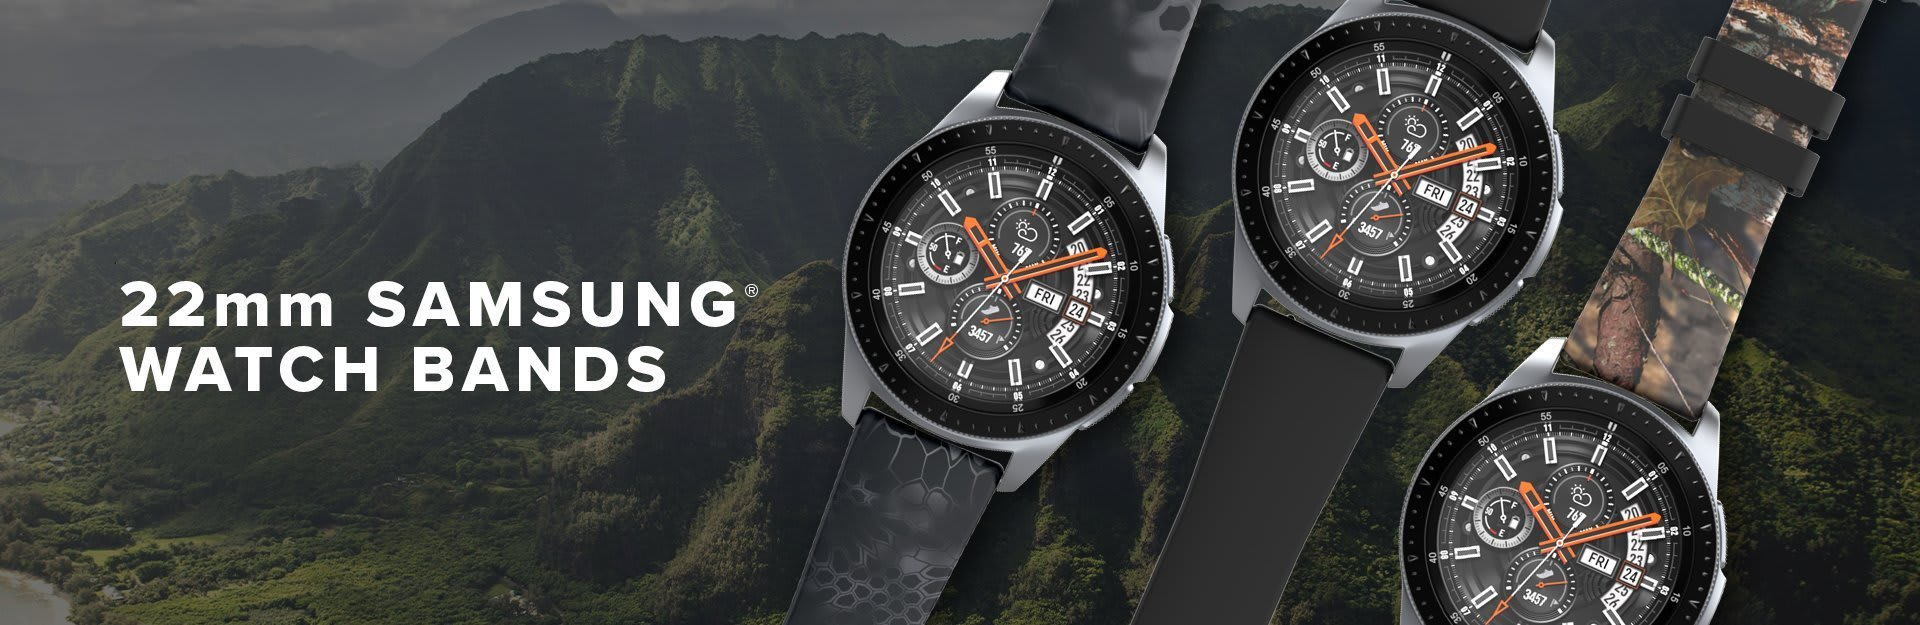 22mm Samsung Watch Bands, several samsung watches are overlaid on a background of tropical-looking mountains